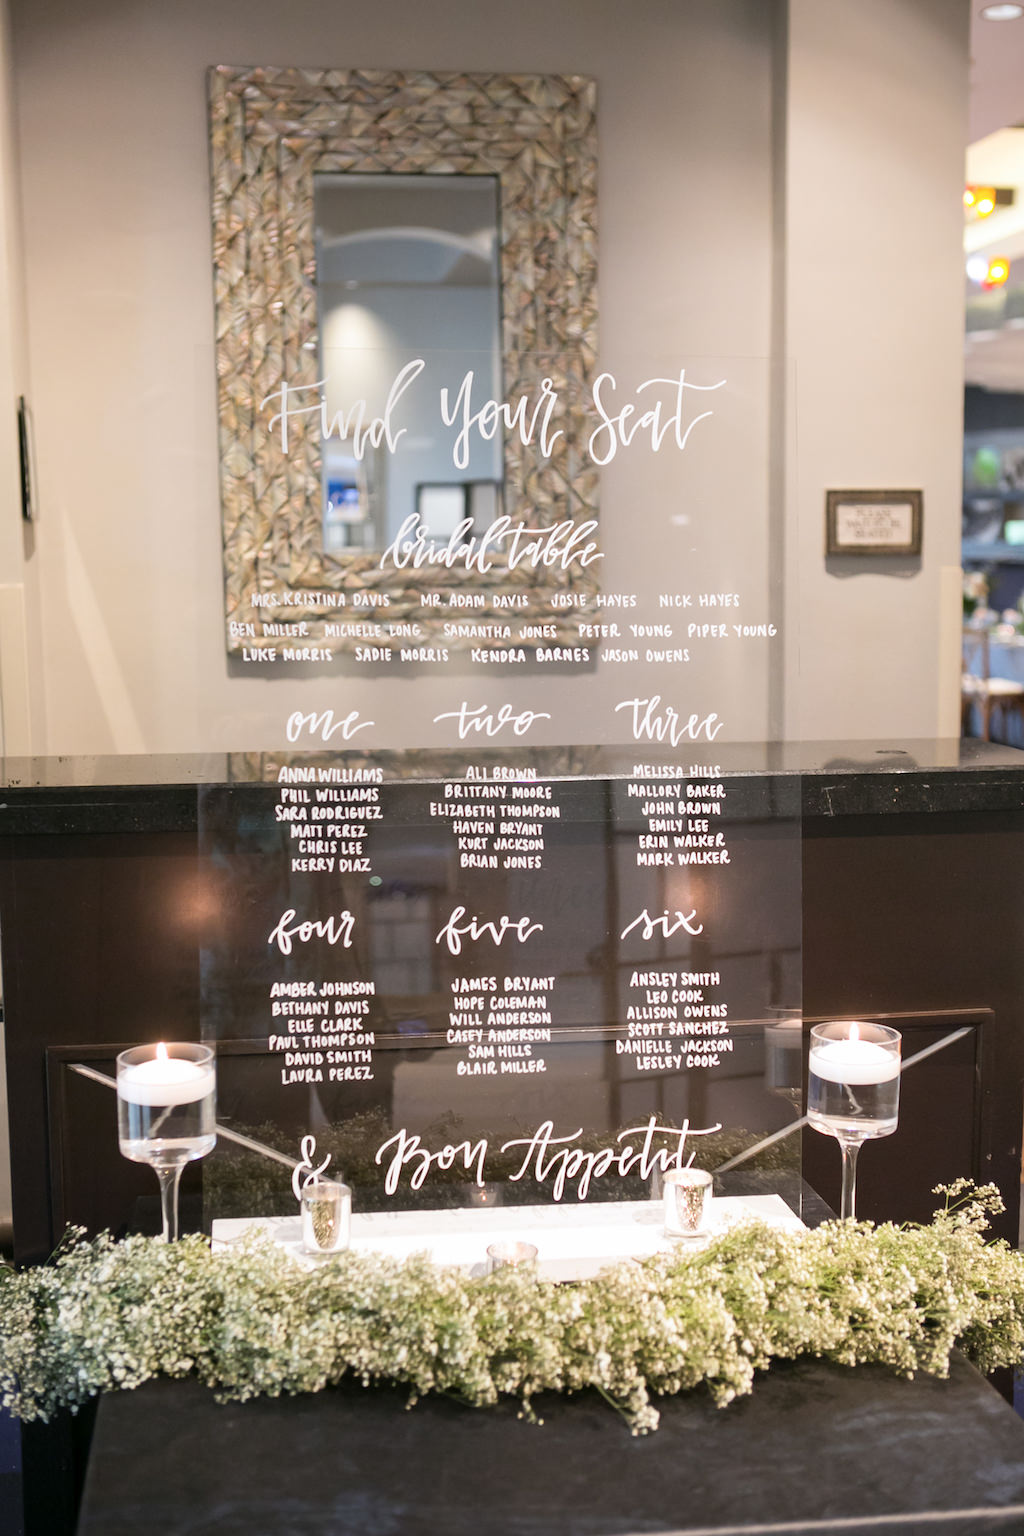 Wedding Reception Decor, Clear Acrylic Wedding Seating Chart with White Font, White Baby's Breathe Garland, Glass Candlesticks with Floating Candles | Tampa Bay Photographer Carrie Wildes Photography | Wedding Planner Coastal Coordinating | Rentals and Florist Gabro Event Services